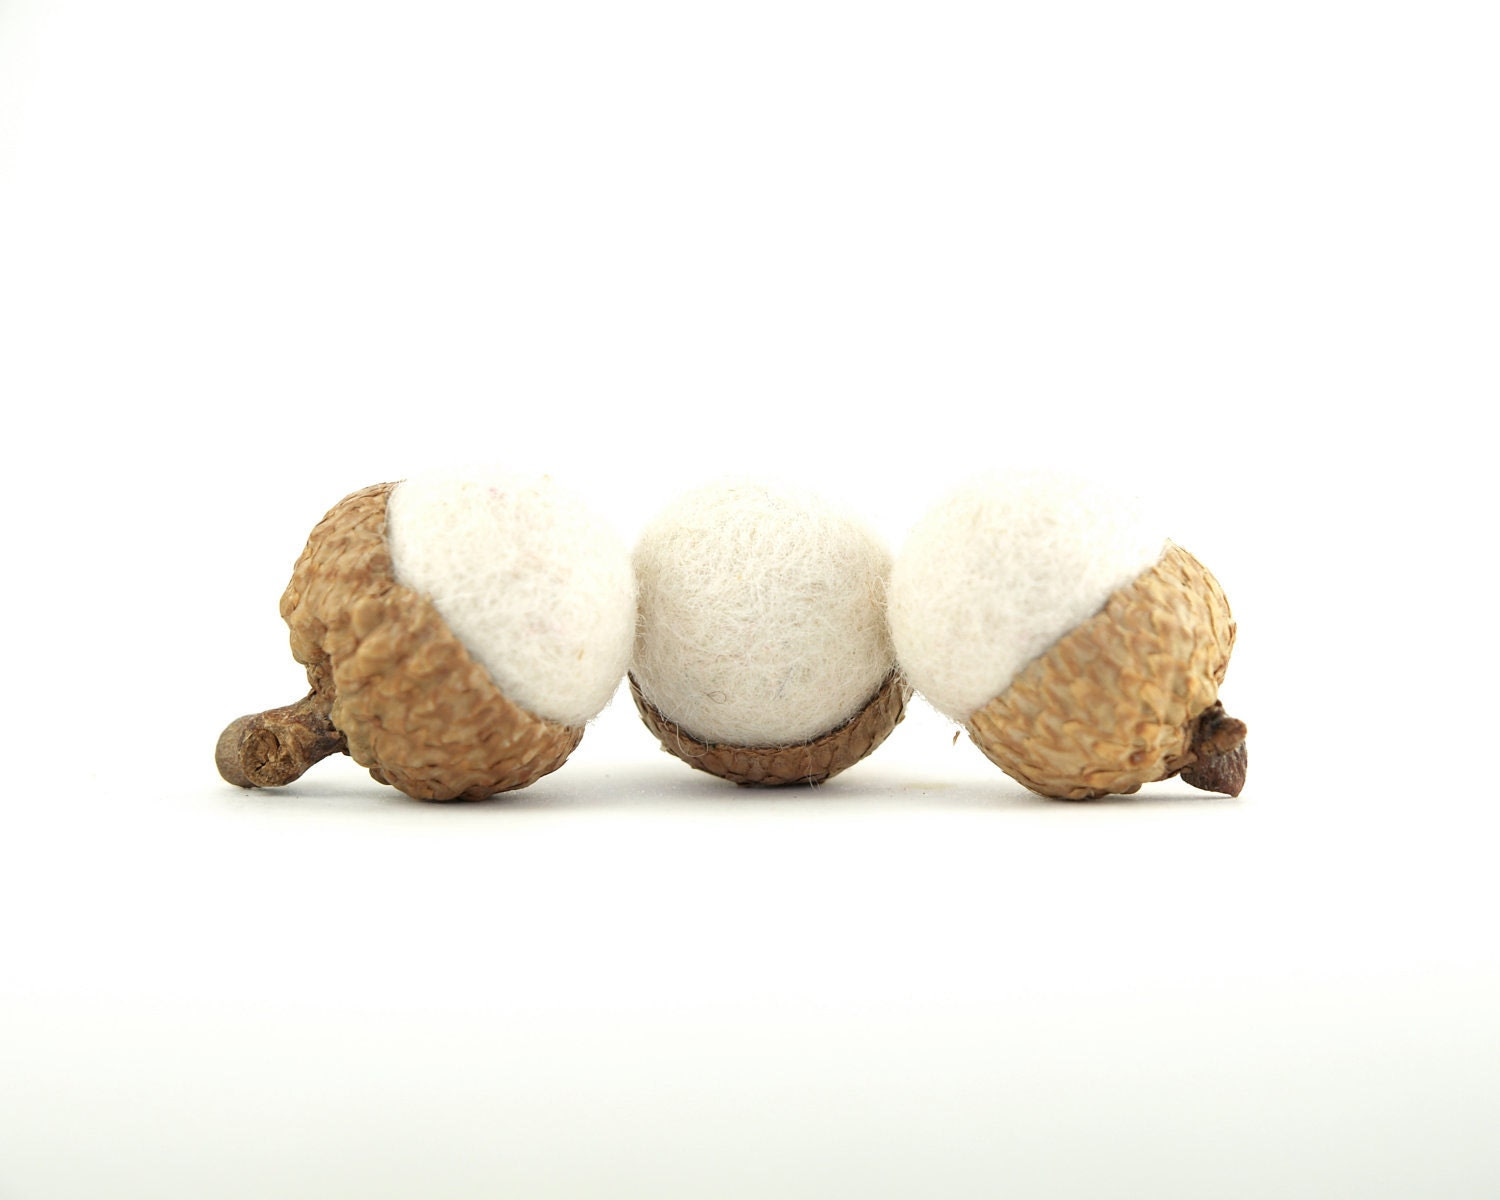 Snow White Neelde Felted Acorns, Wedding Favor Decorations, Baby Shower, Woodland Home Decor - 10